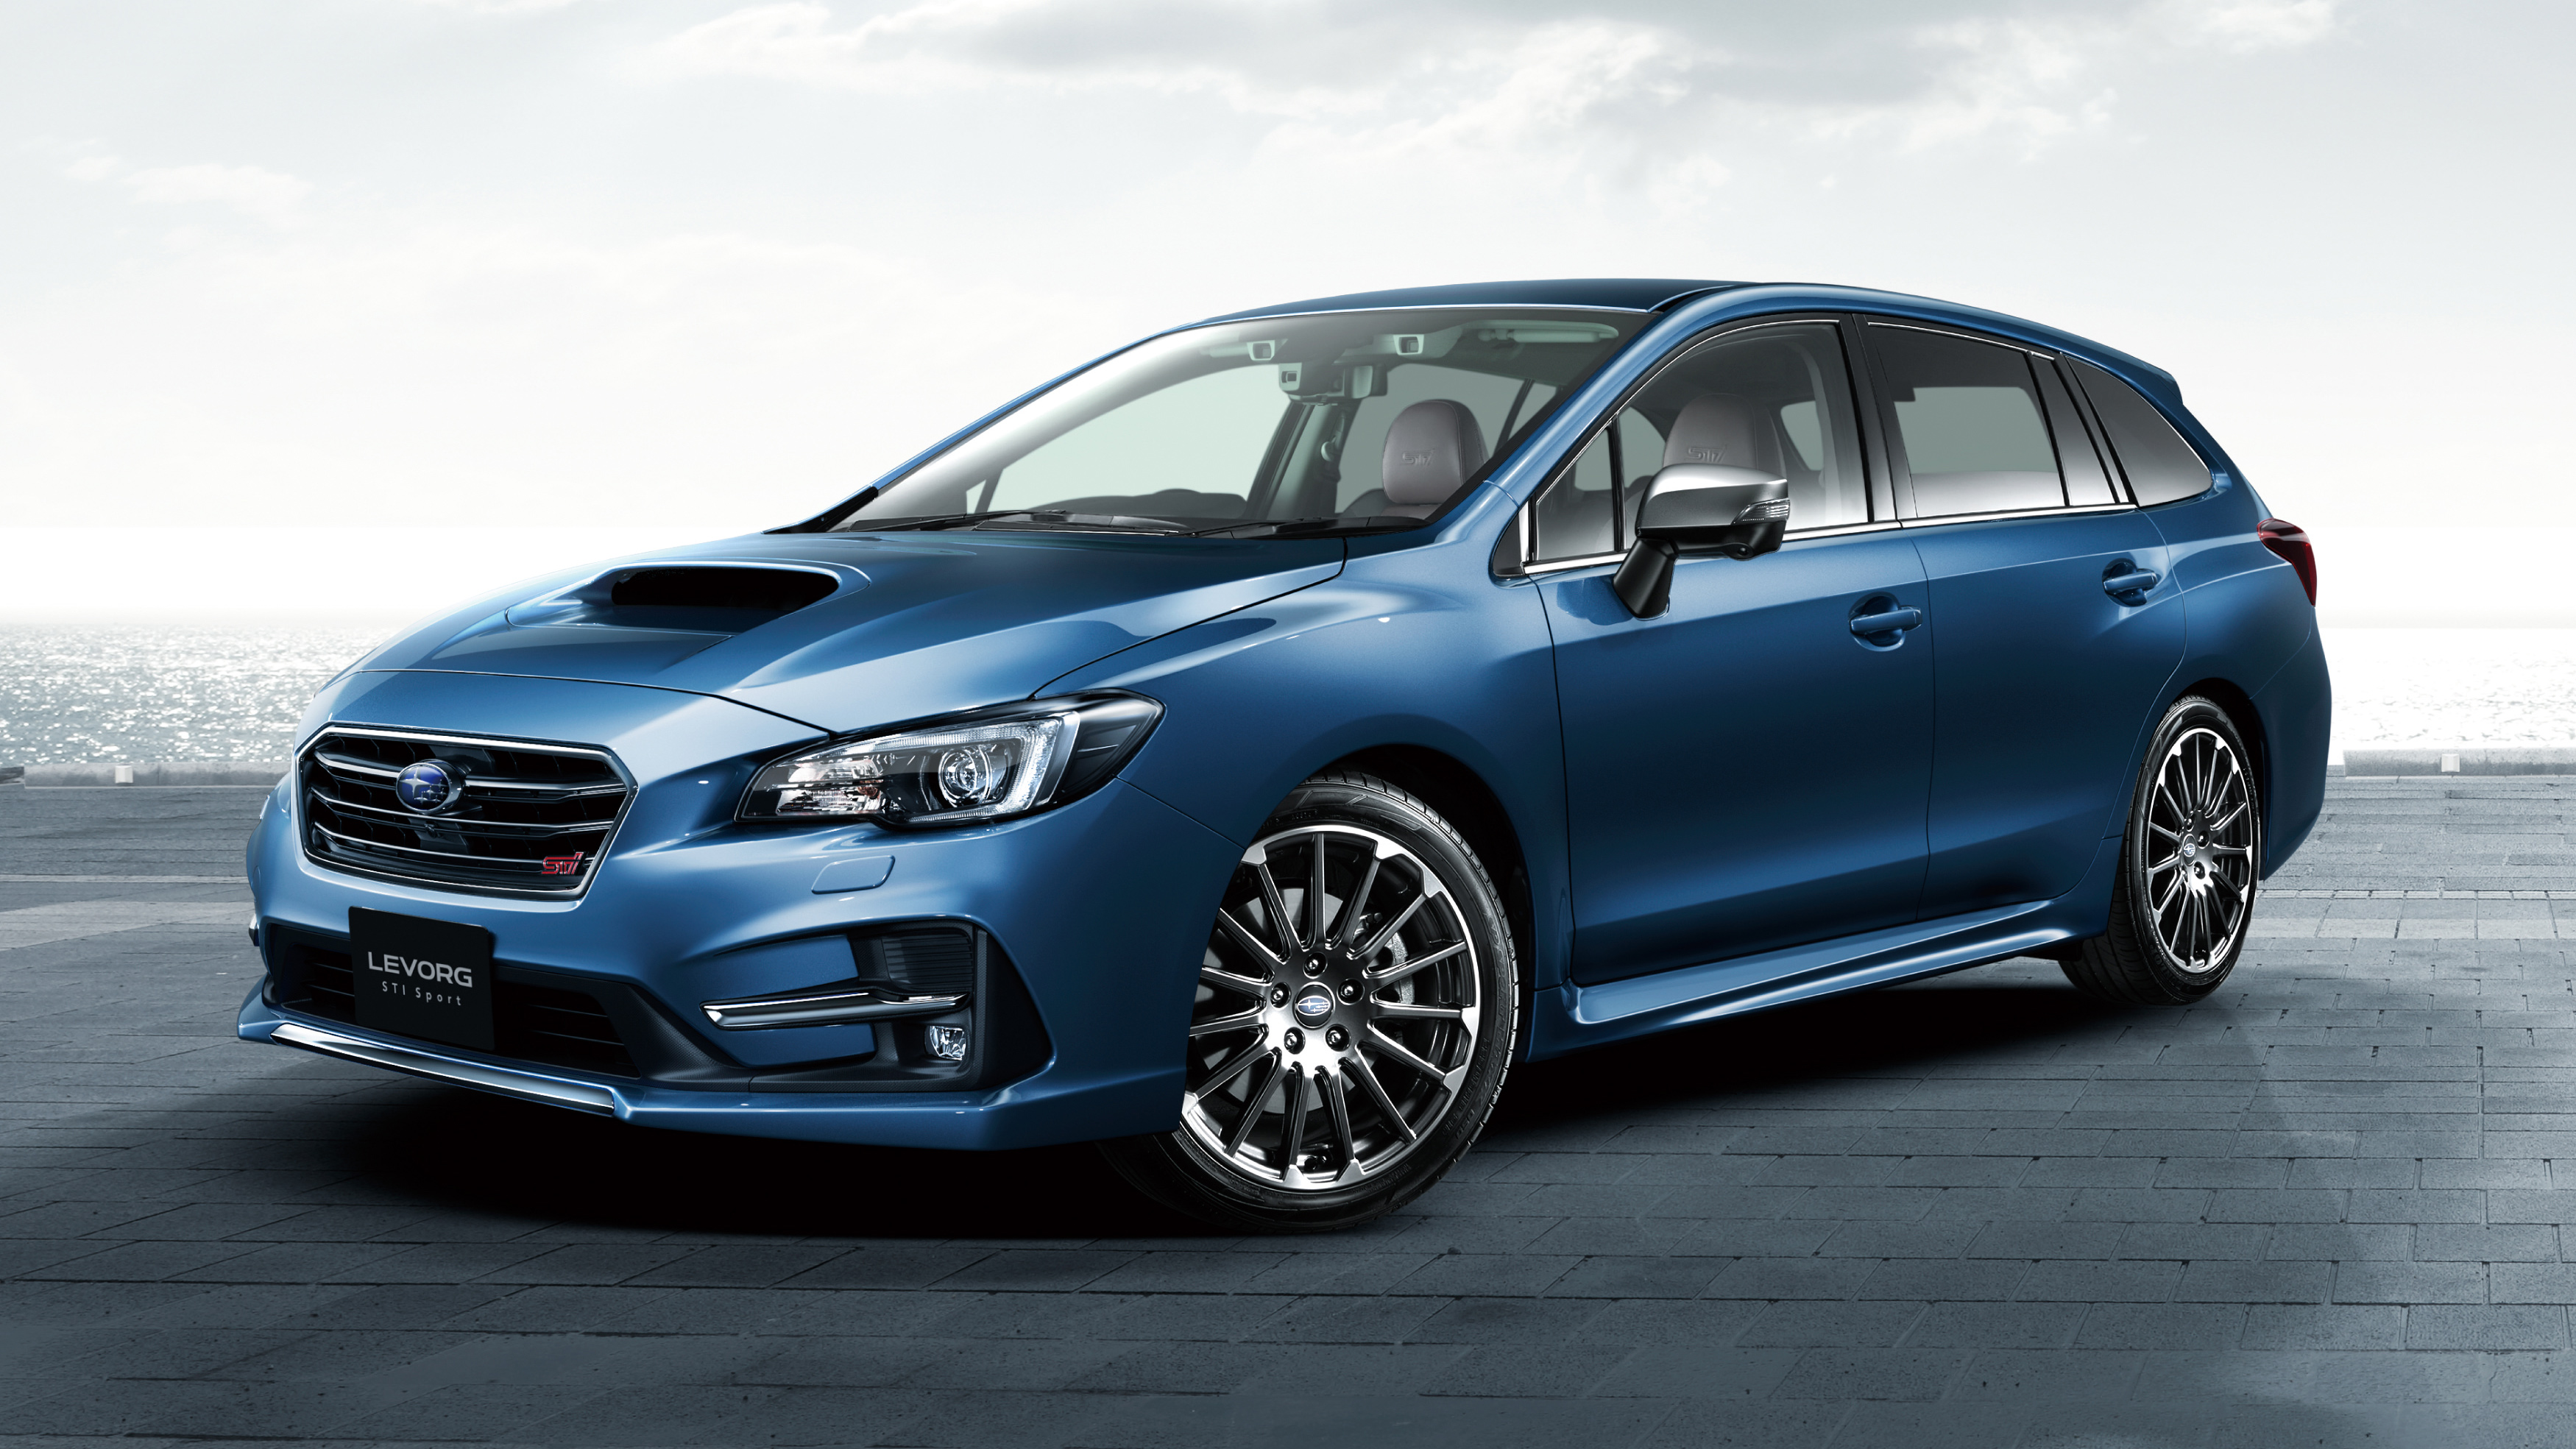 2017 Subaru Levorg STI Sport Wallpaper | HD Car Wallpapers ...